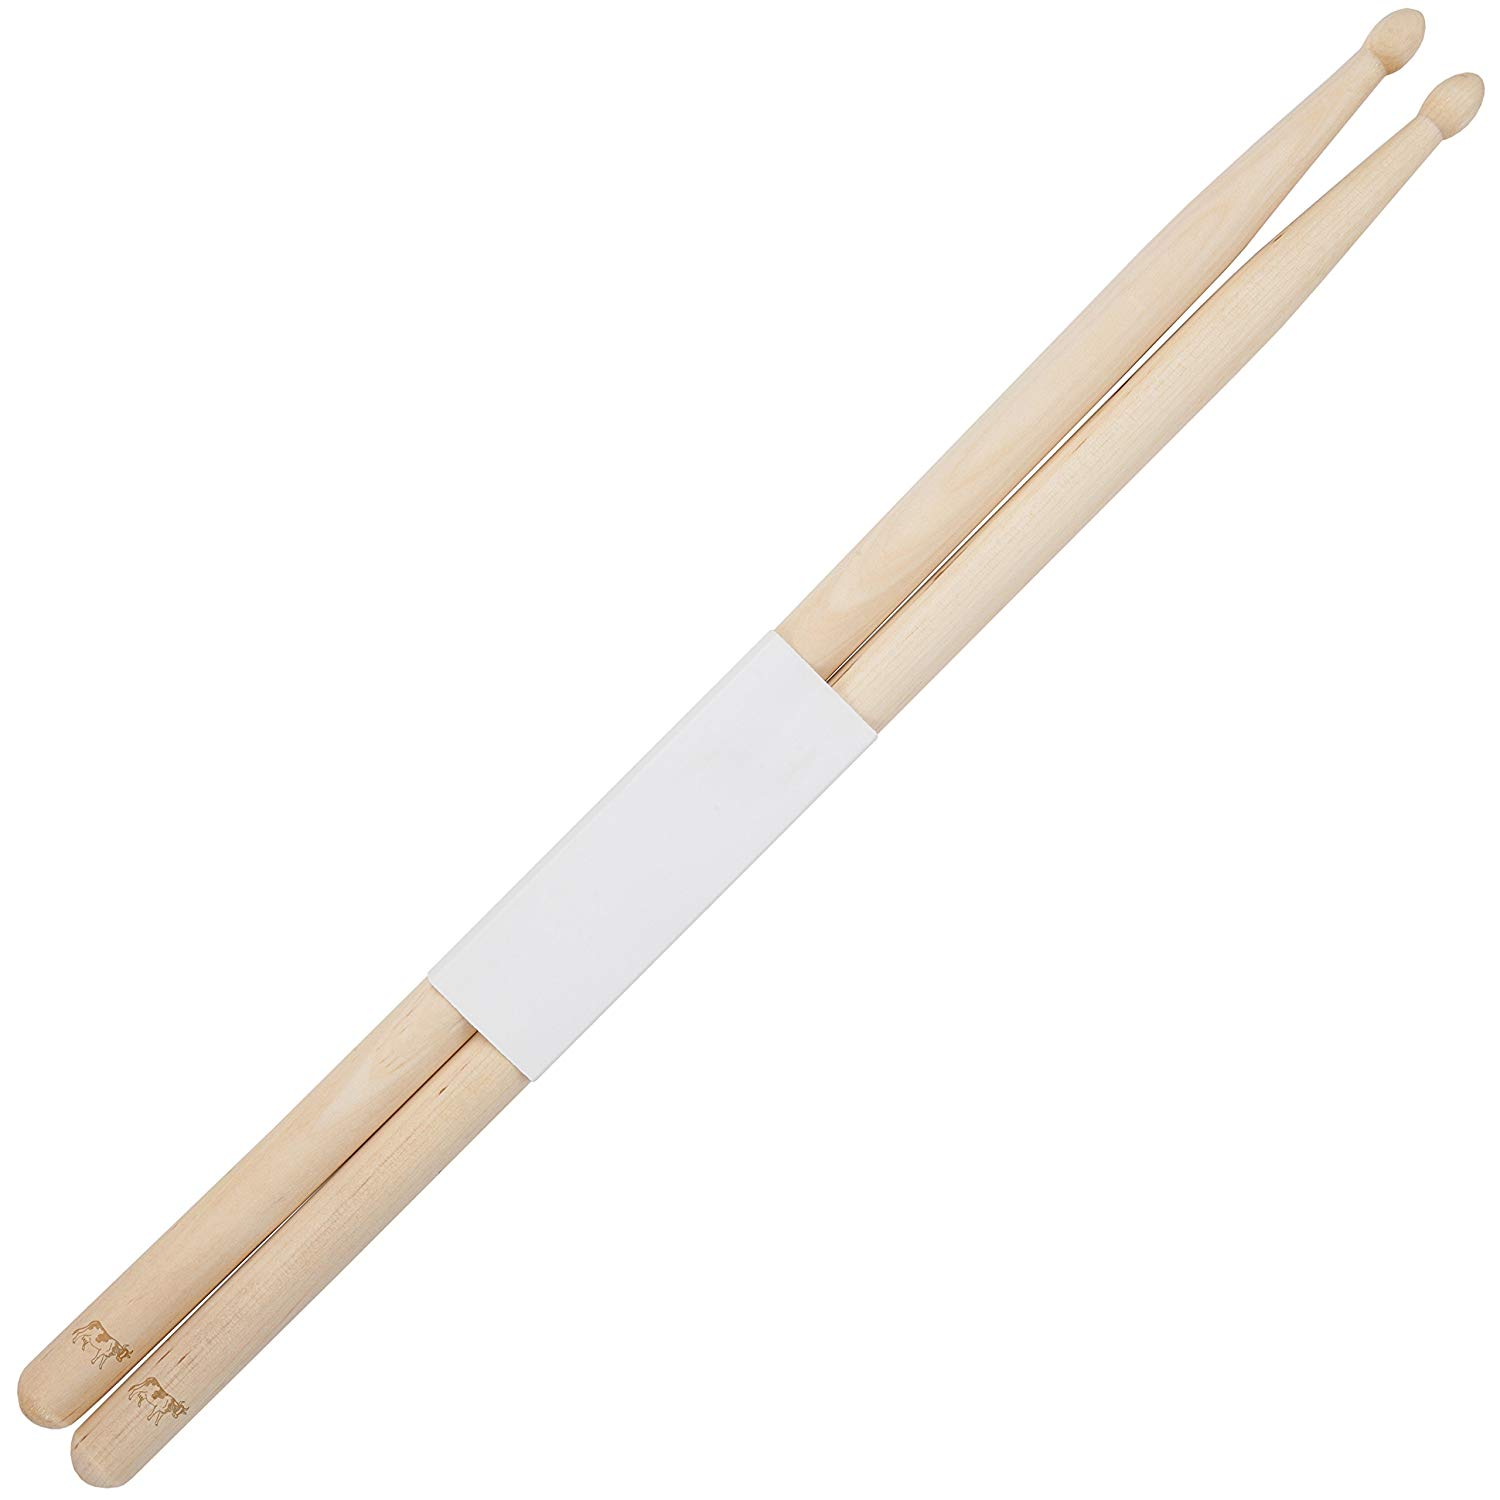 Cow 5B Maple Drumsticks With Laser Engraved Design - Durable Drumstick Set With Wooden Tip - Wood Drumsticks Gift